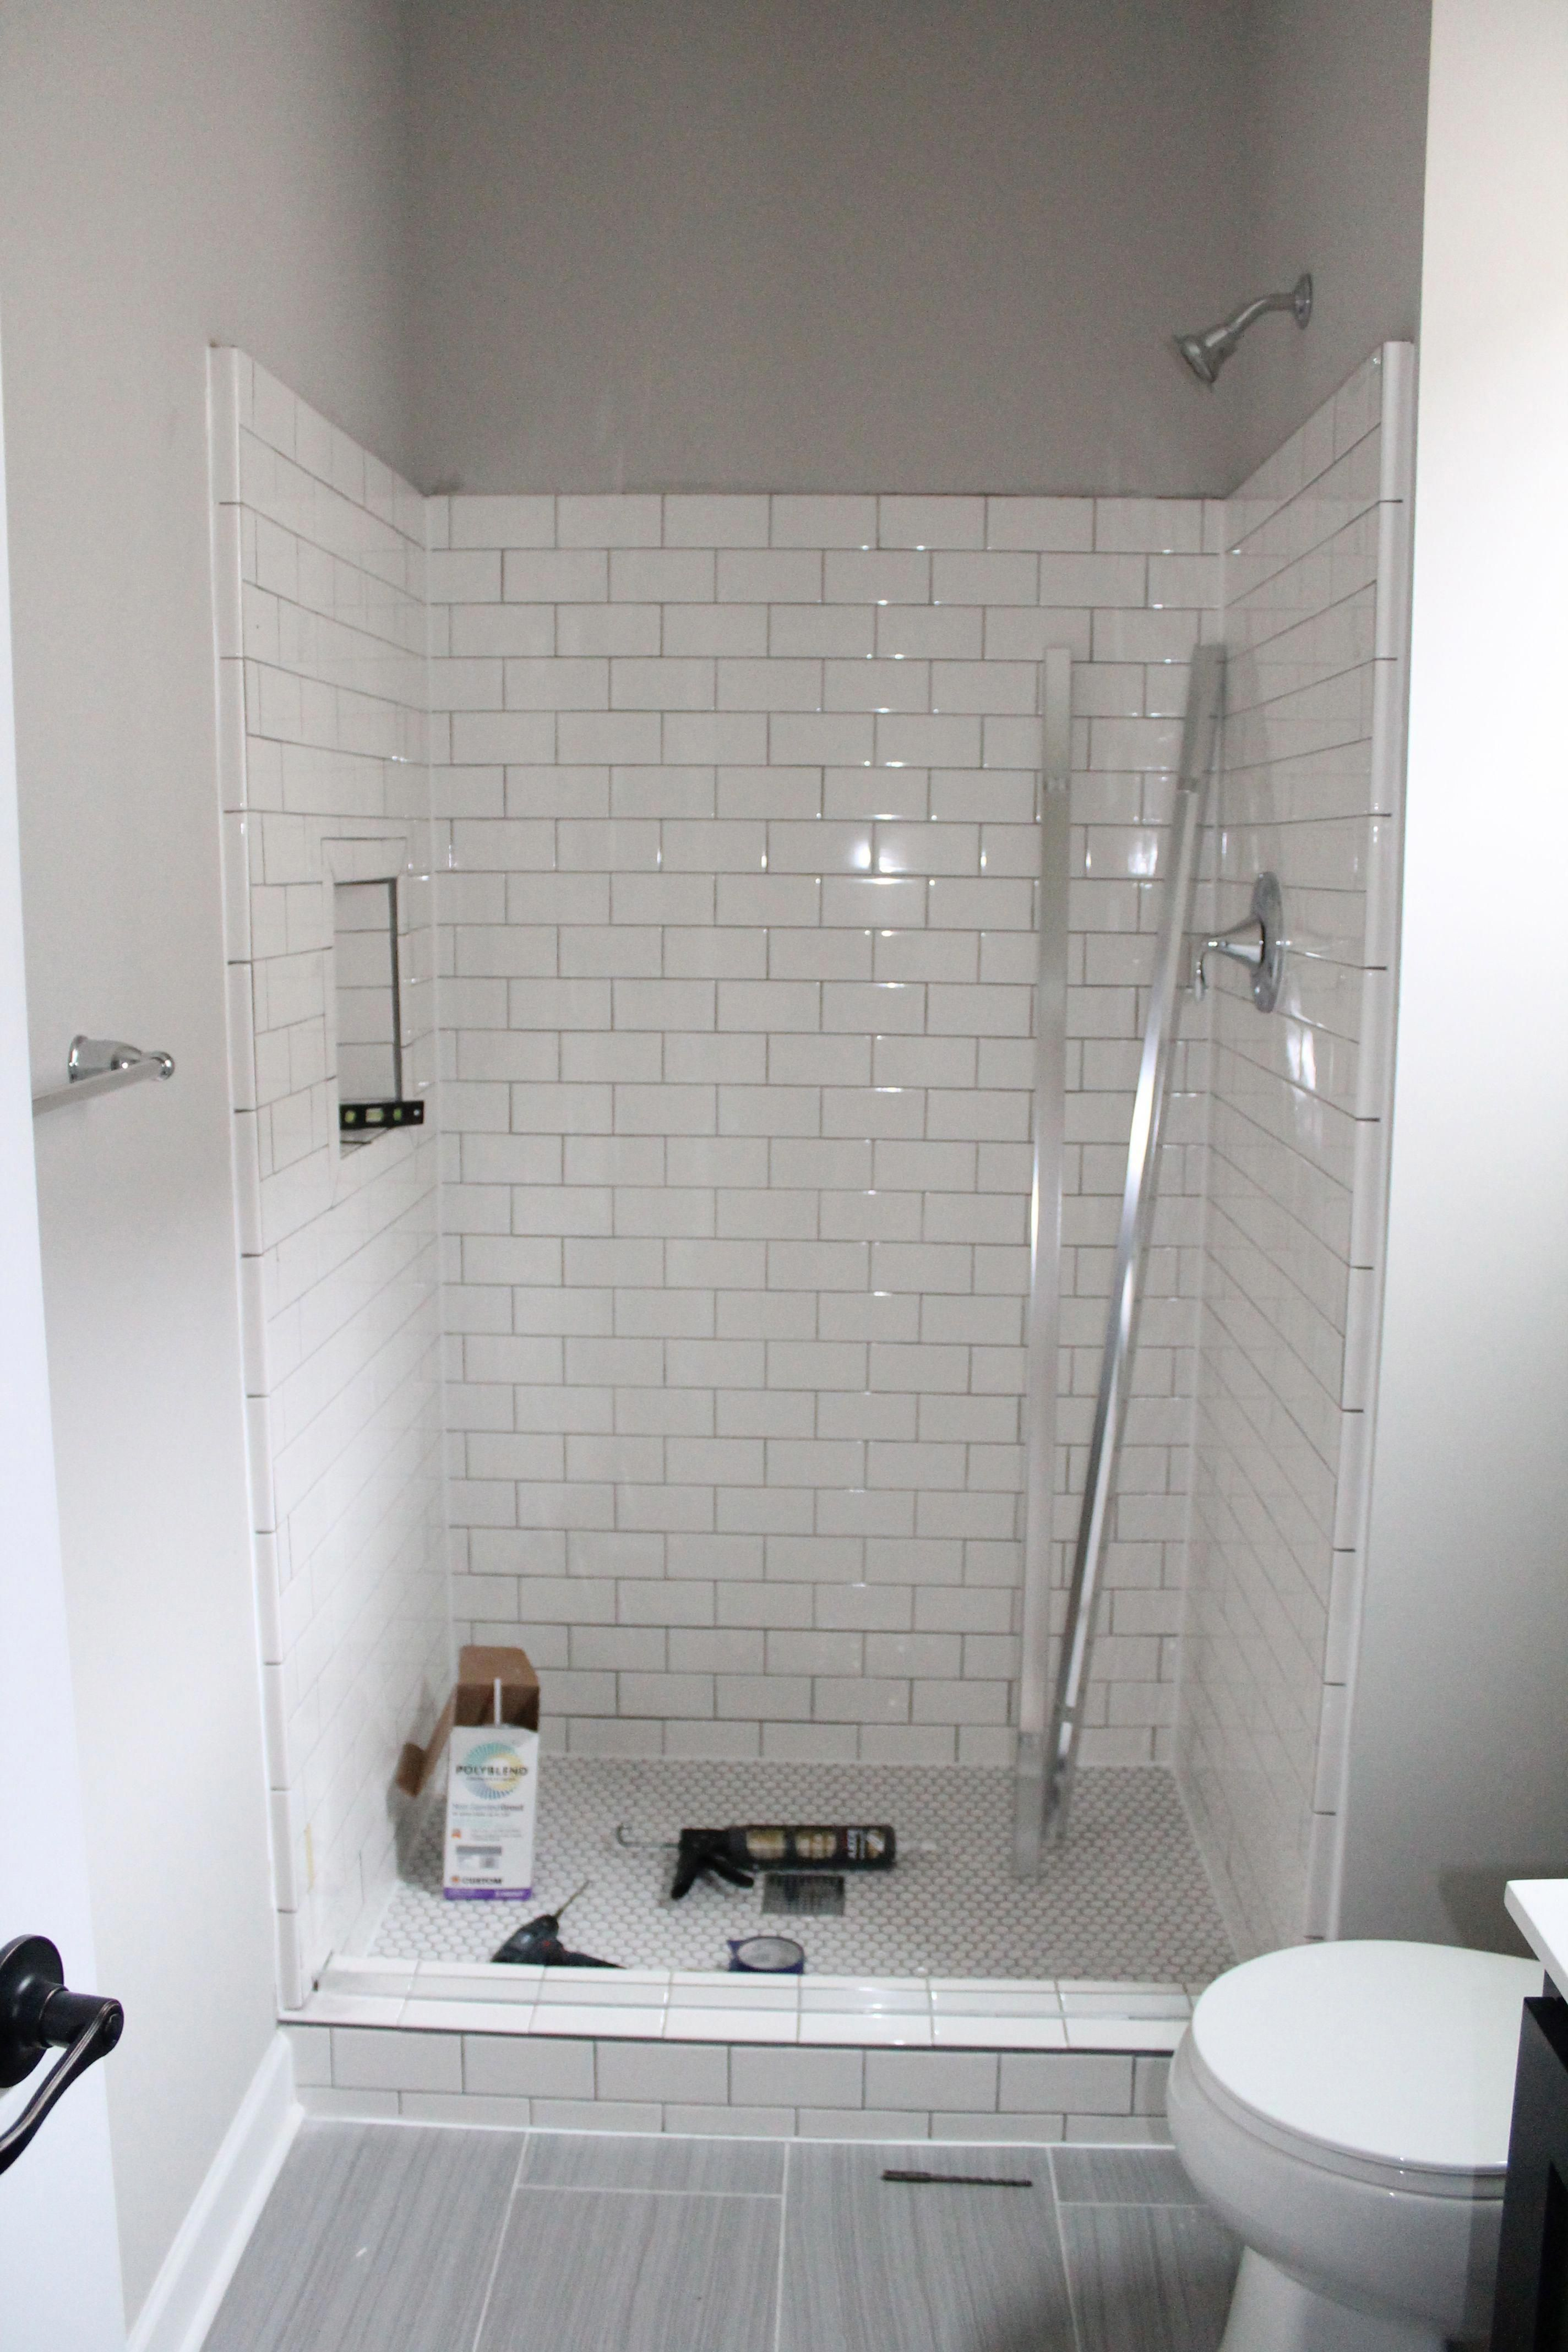 7 Top Trends And Cheap In Bathroom Tile Ideas For 2018 Bathroom Tile Ideas Floor Small Bathroom Remodel Cost Bathroom Remodel Cost White Subway Tile Bathroom